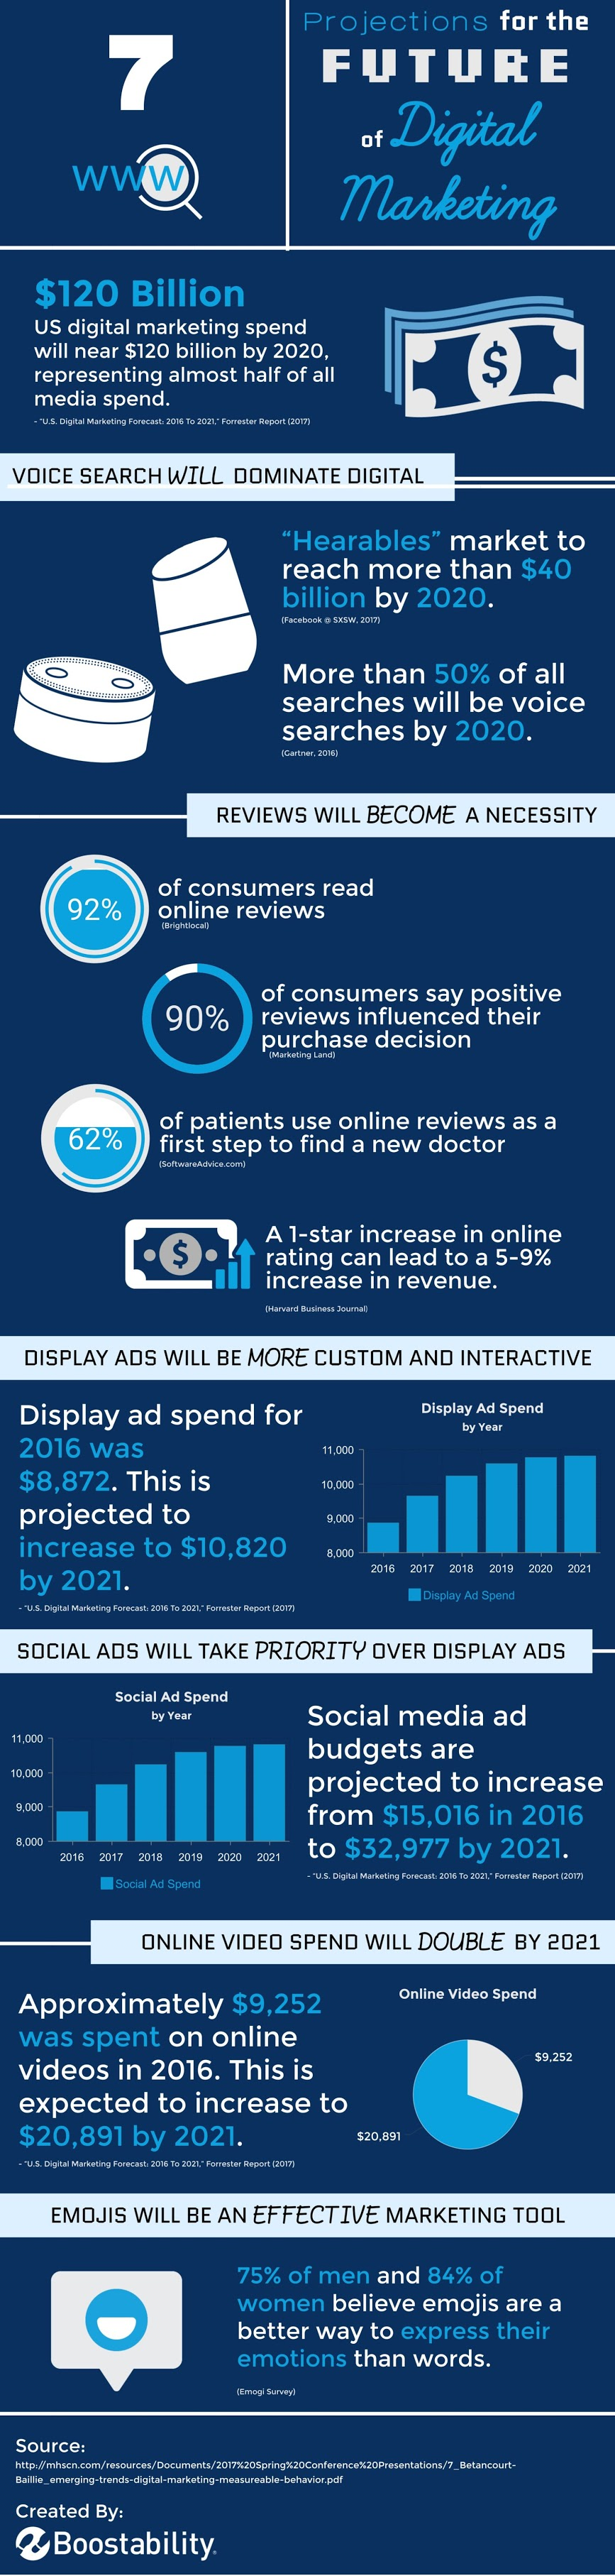 7 Projections for the Future of Digital Marketing - #Infographic